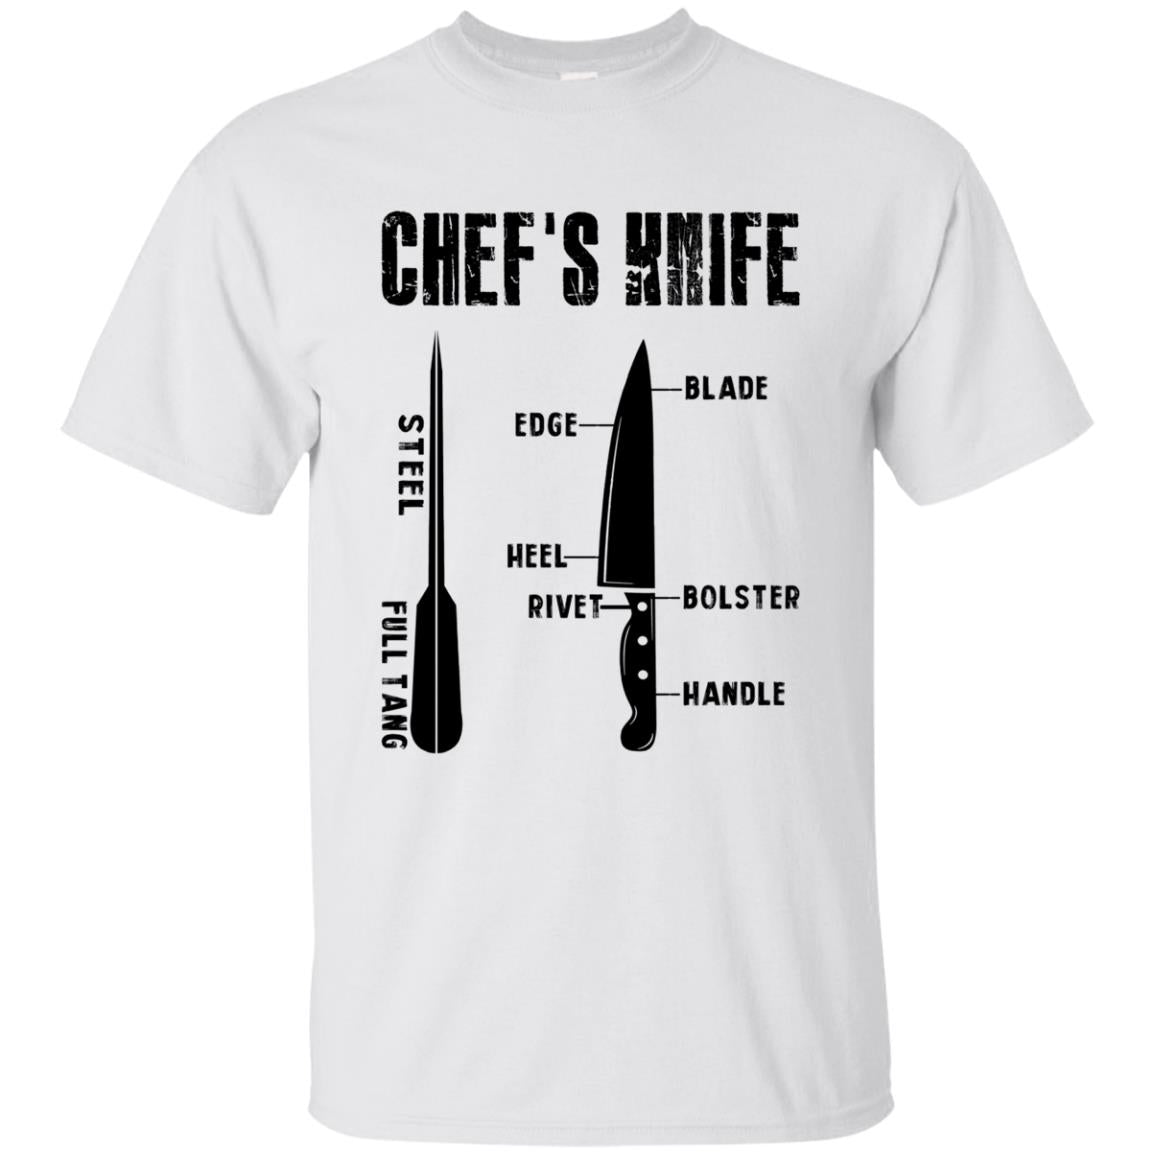 Chef s Knife Steel Full Tang T Shirts